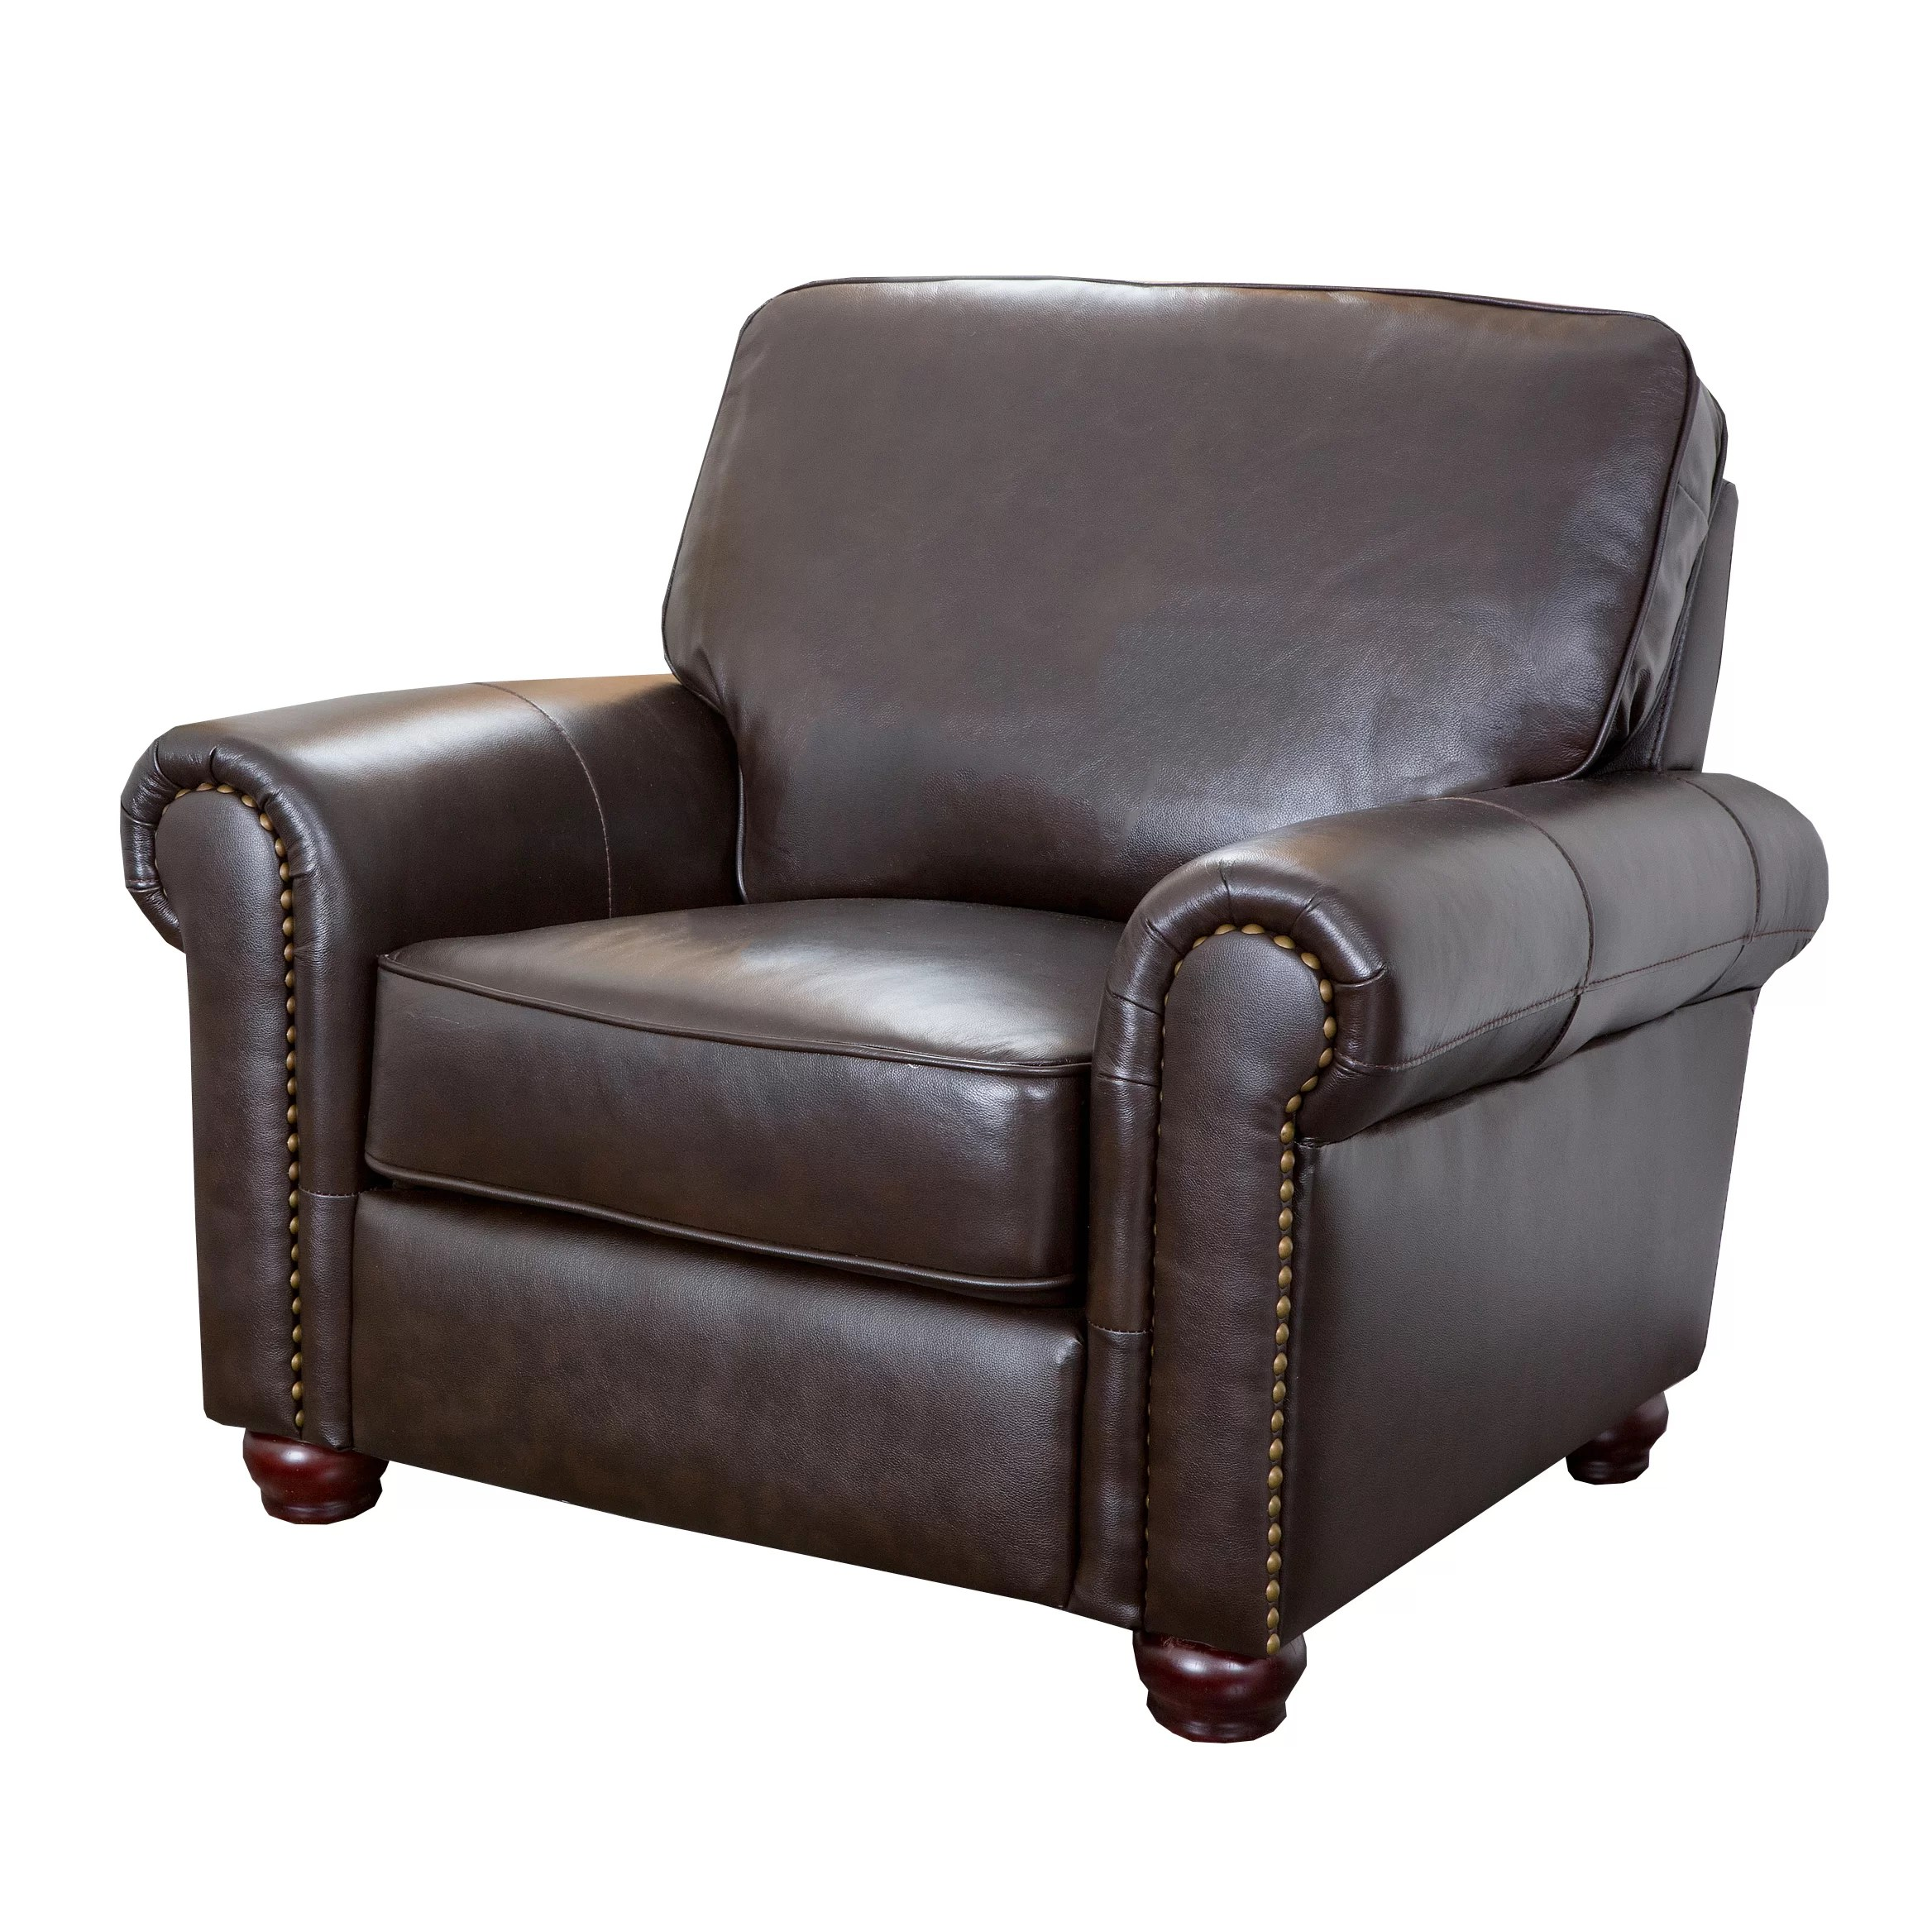 Darby Home Co Coggins Leather Club Chair  Reviews  Wayfair